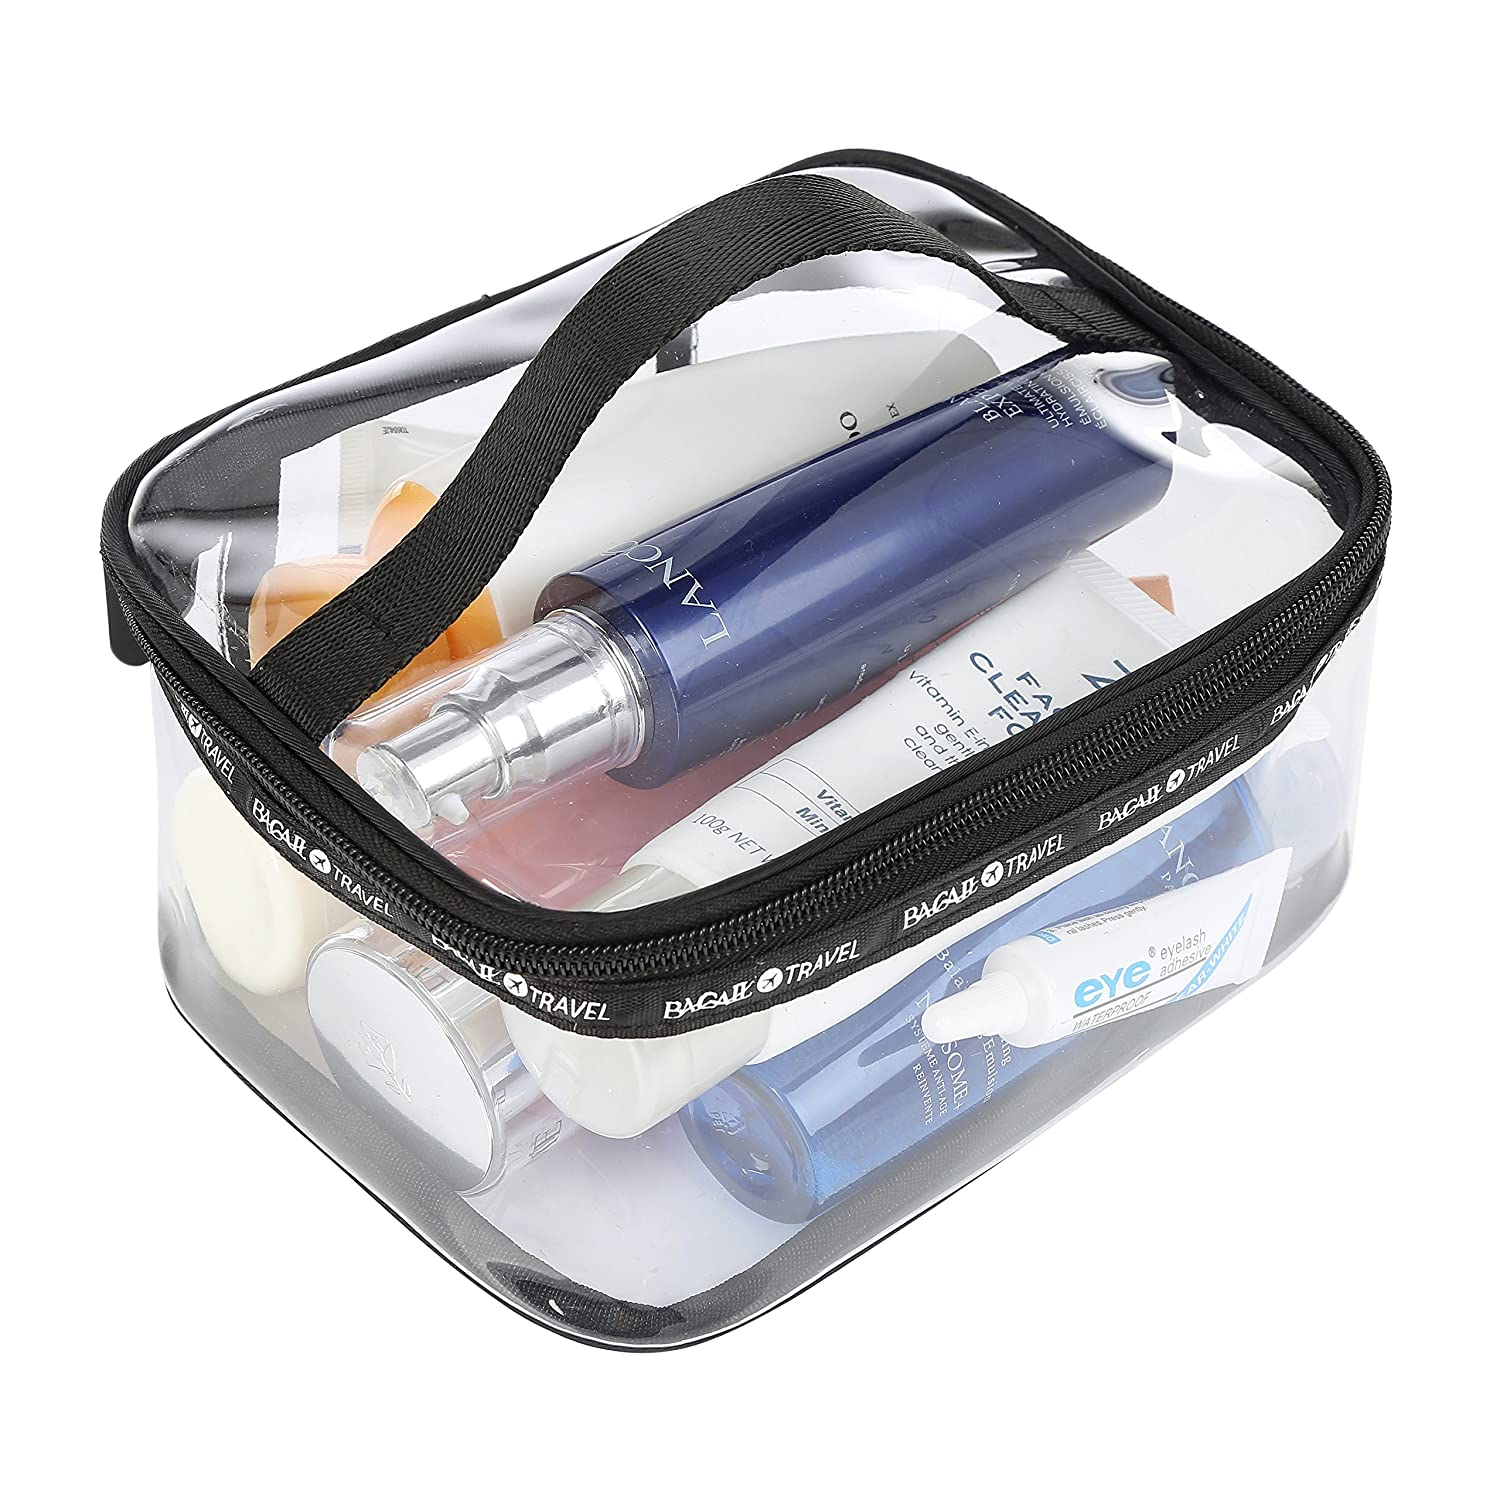 Bagail Large Clear Makeup Bag Zipper Waterproof Transparent Portable Travel Storage Pouch Cosmetic Toiletry Bag With Handle by Bagail